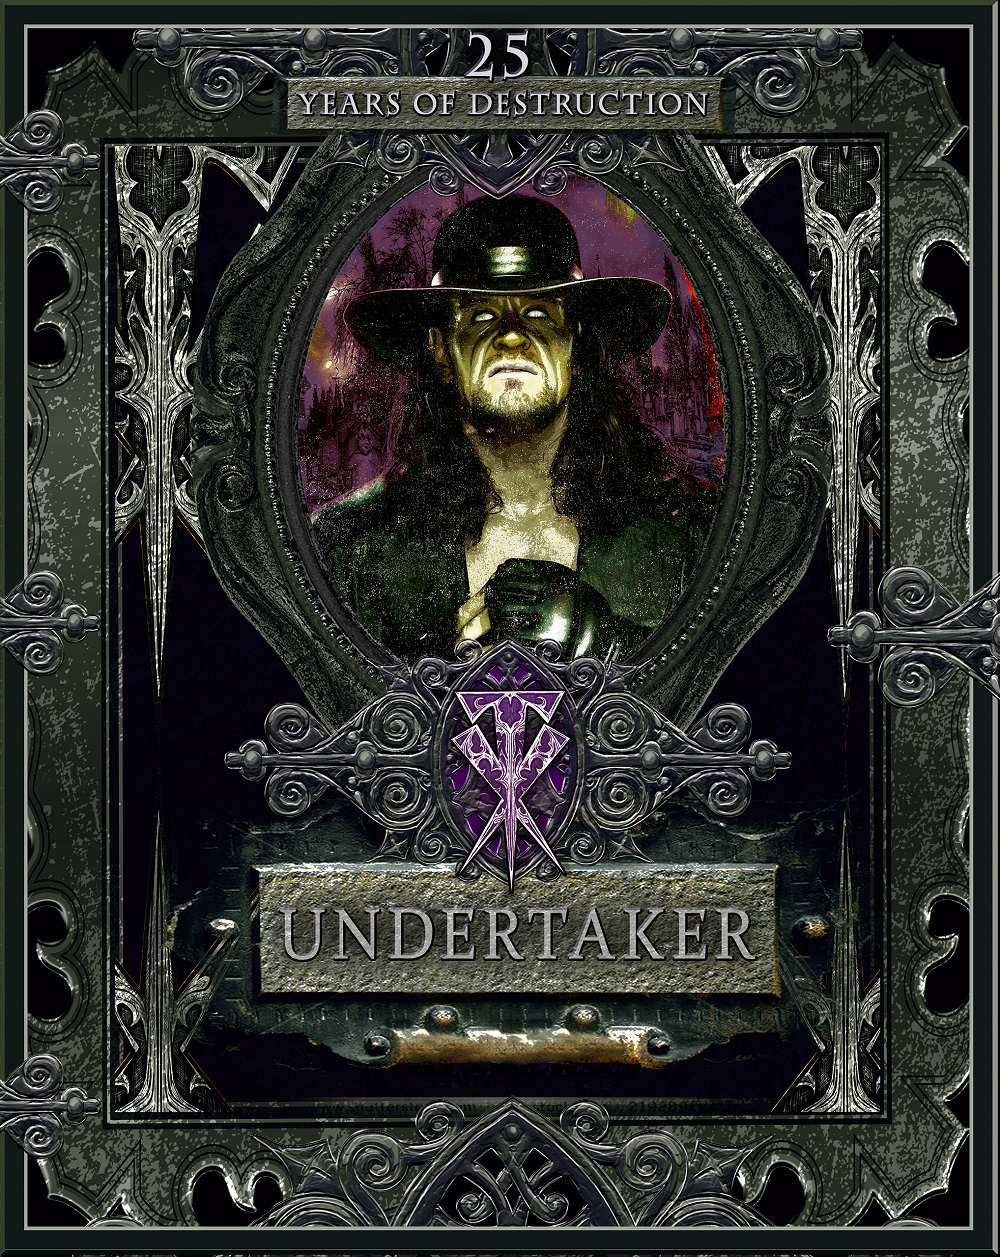 Portada-de-Undertaker.-25-Years-of-Destruction